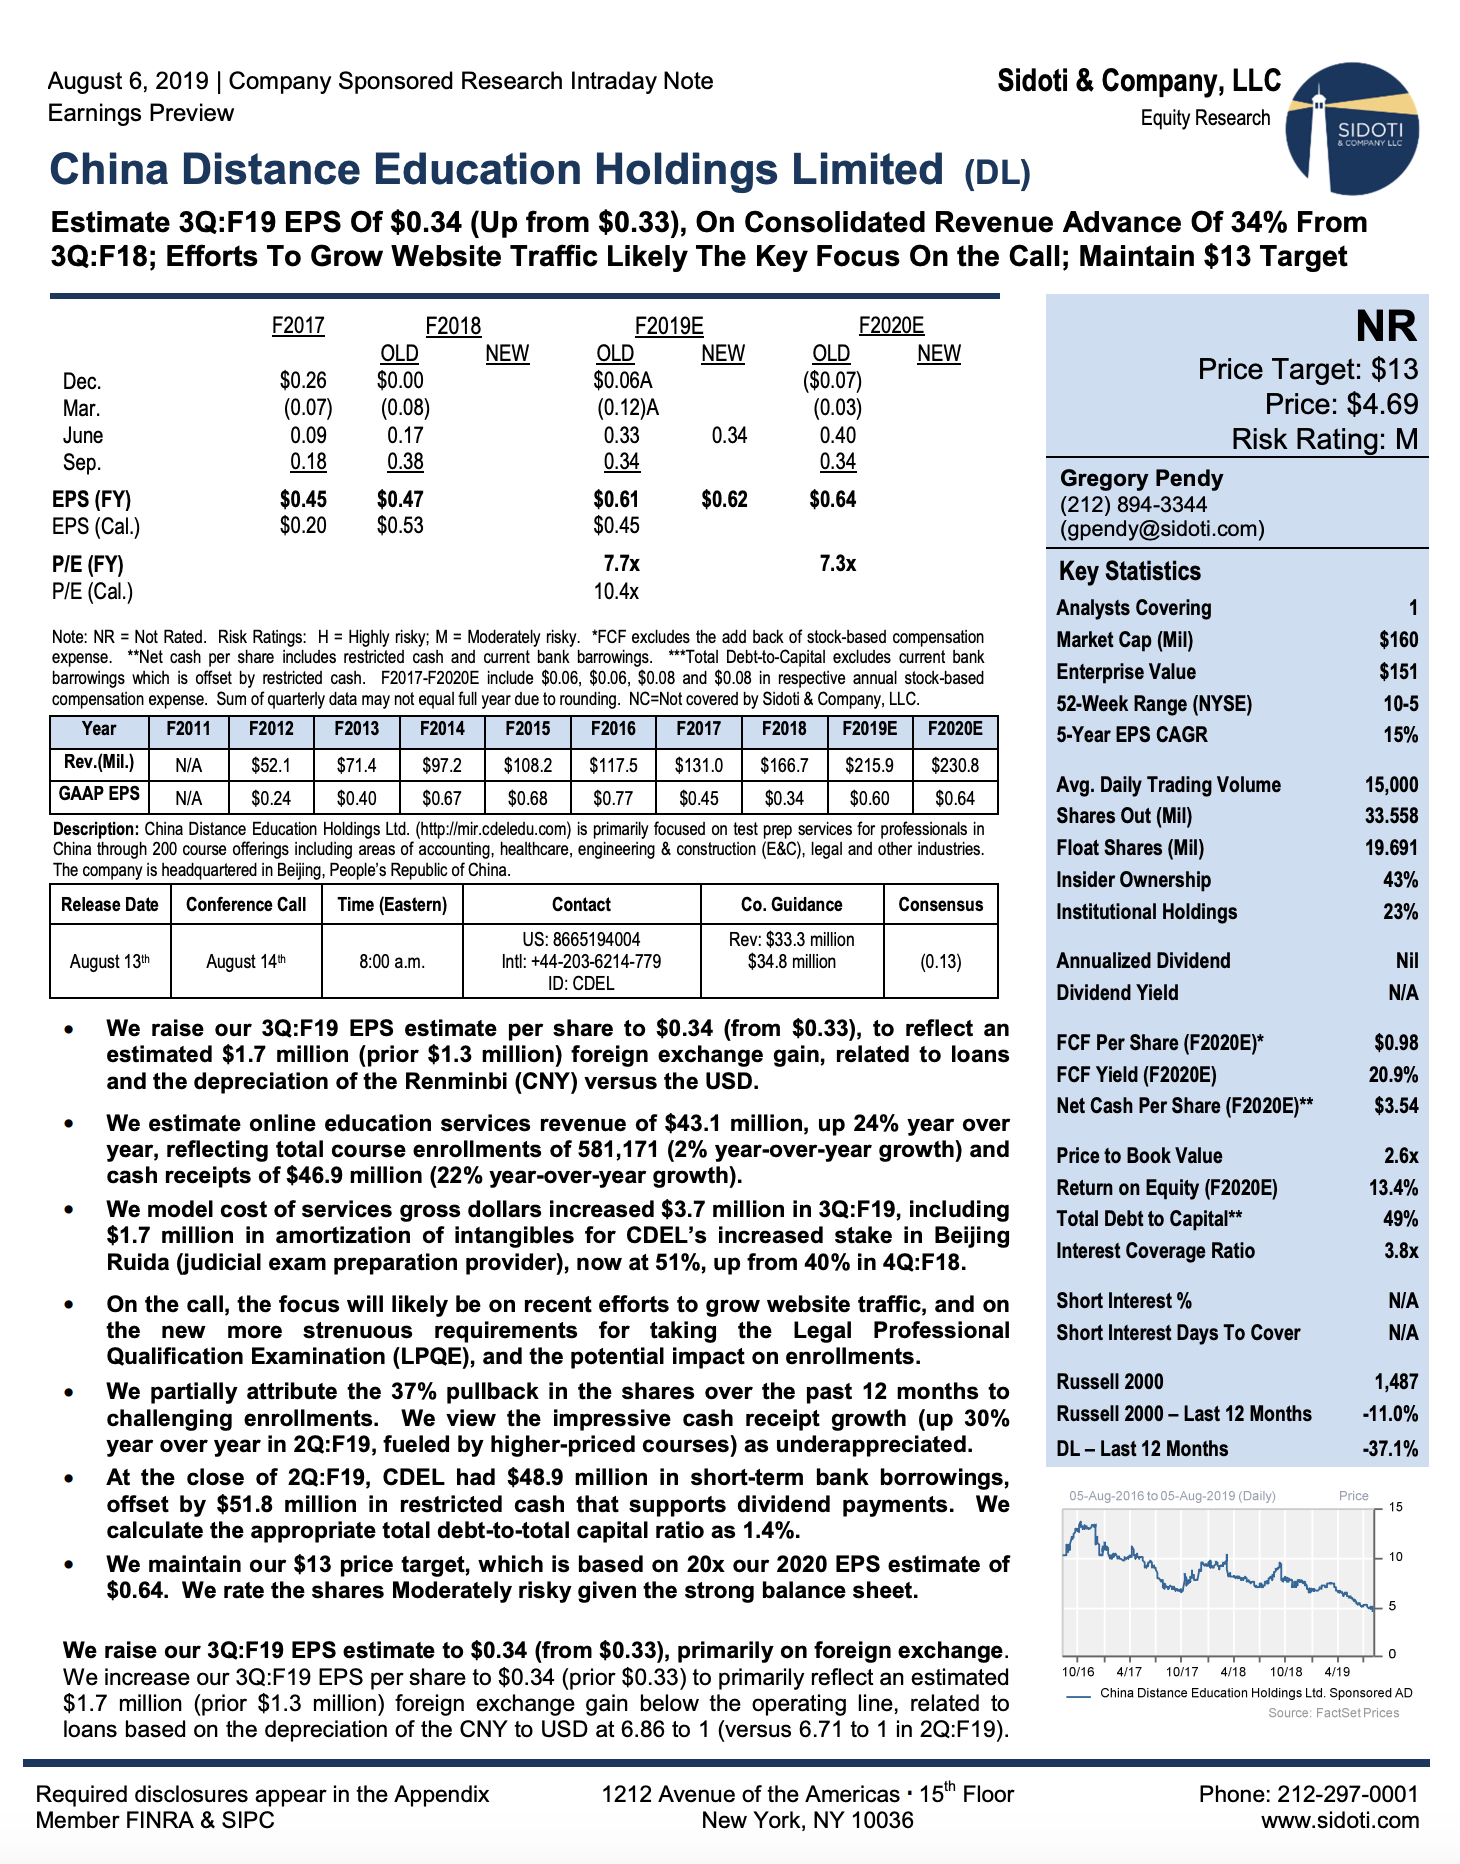 Earnings Preview: August 6, 2019